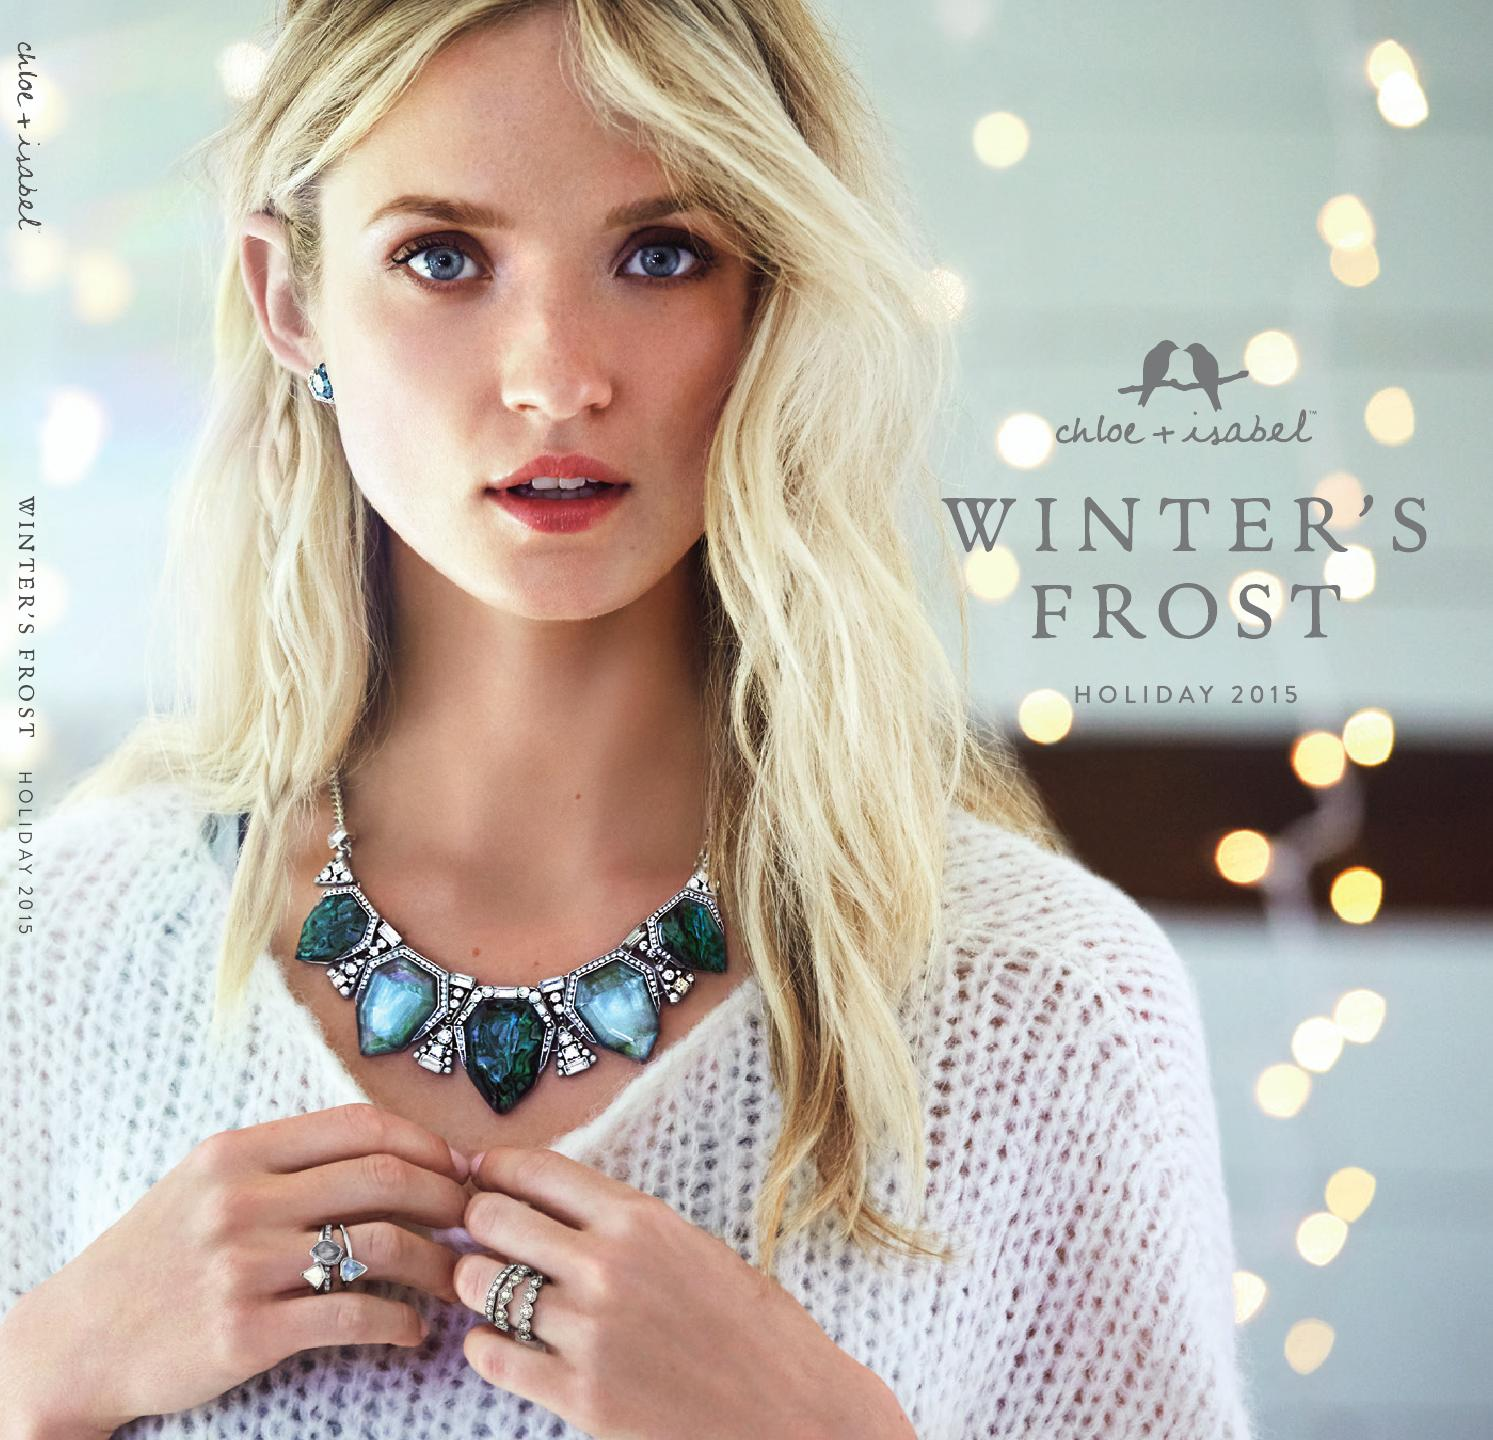 Winter's Frost - Holiday 2015 Collection